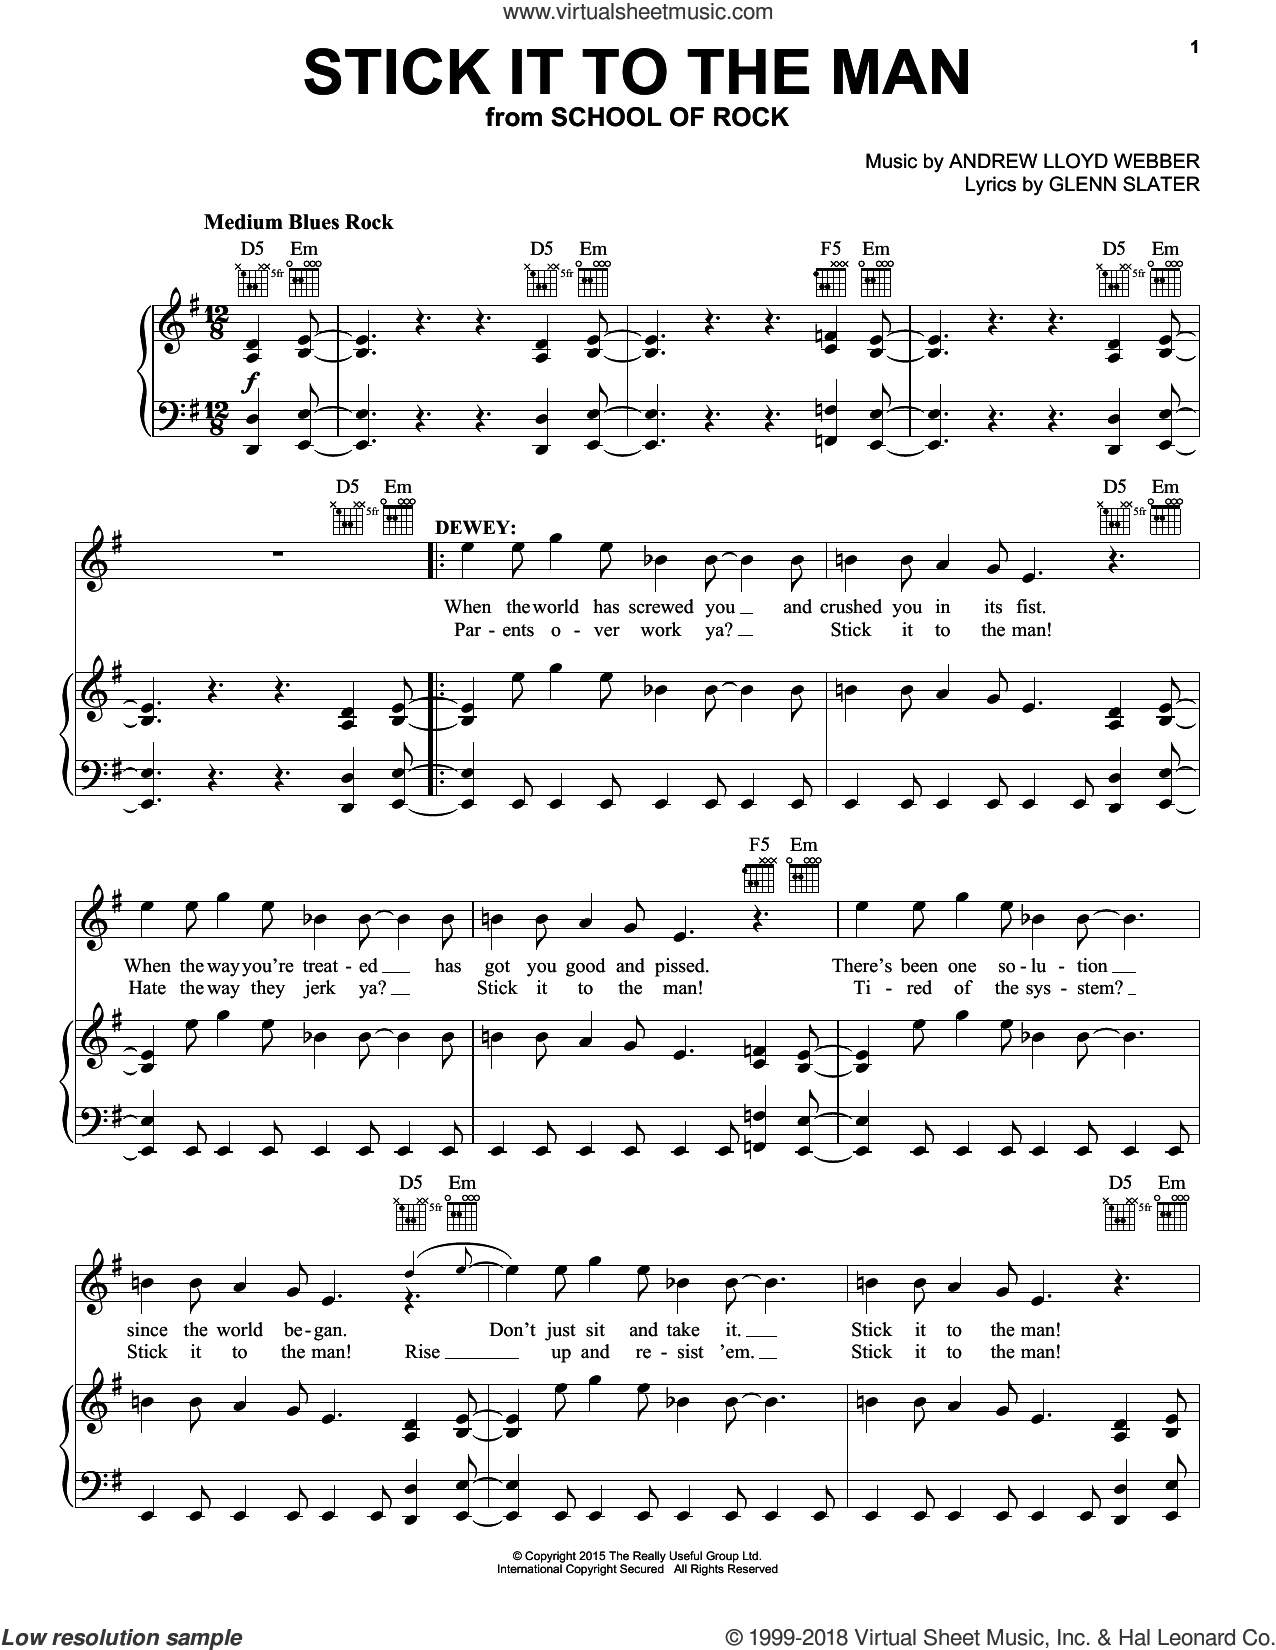 Stick It To The Man sheet music for voice, piano or guitar by Andrew Lloyd Webber and Glenn Slater, intermediate skill level